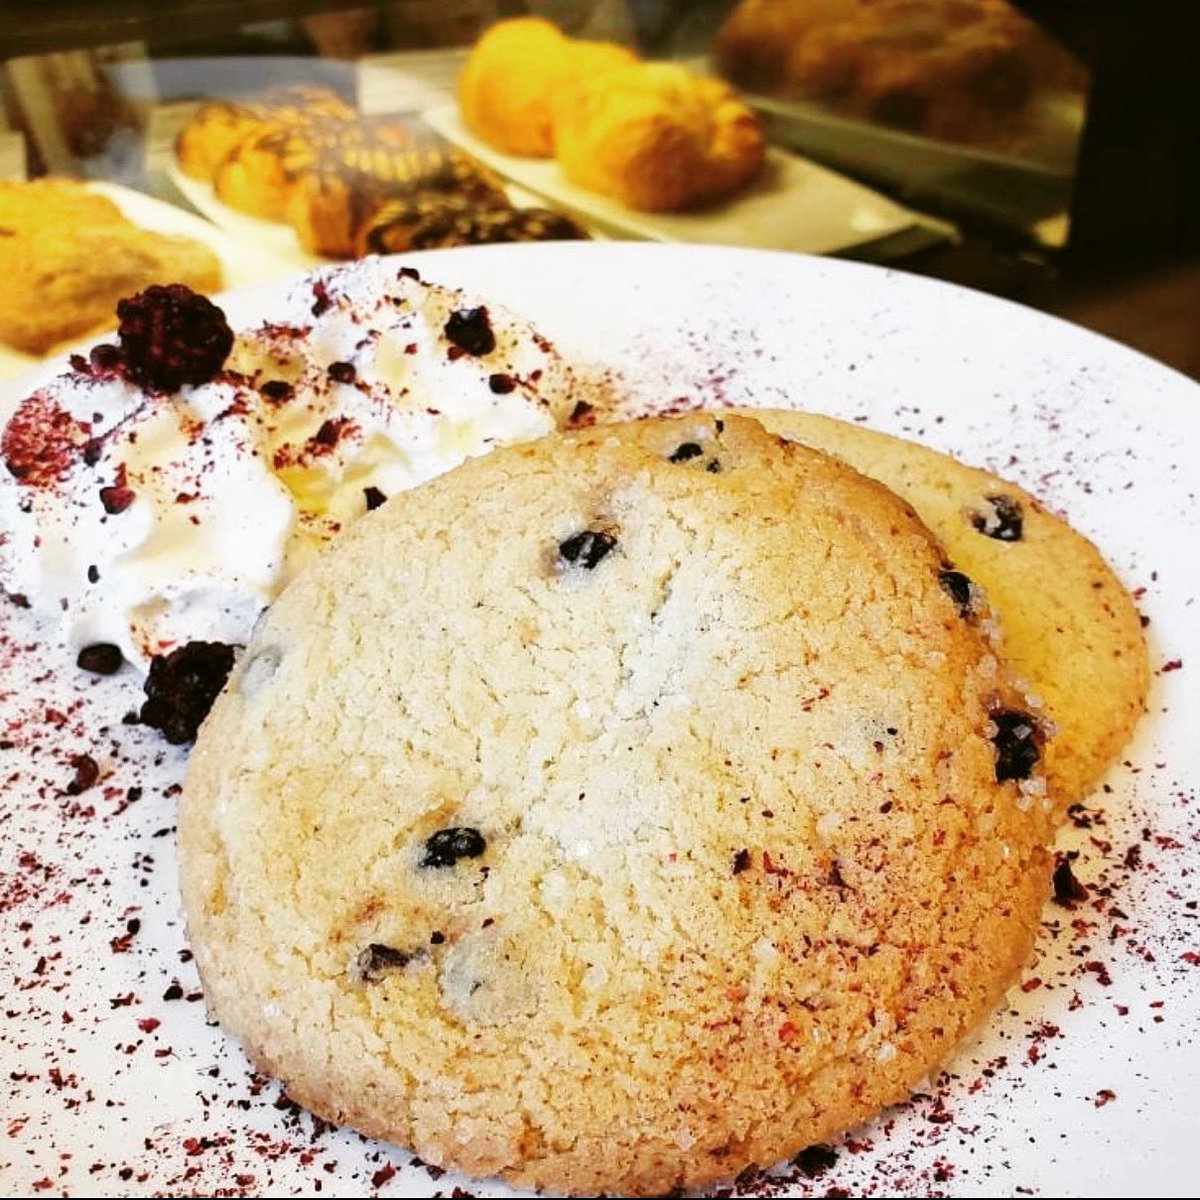 #blueberry #cookie at the #bncafe  Pair your treat with a fresh cup of #coffee for the perfect start to your day. #barnesandnoble #barnesandnobleCafe #bn #latte #espresso #beverages #dessert #springiscoming #bncafé #bnbookfun   post @bnnewhartford  pic.twitter.com/BjOtcoxl6H